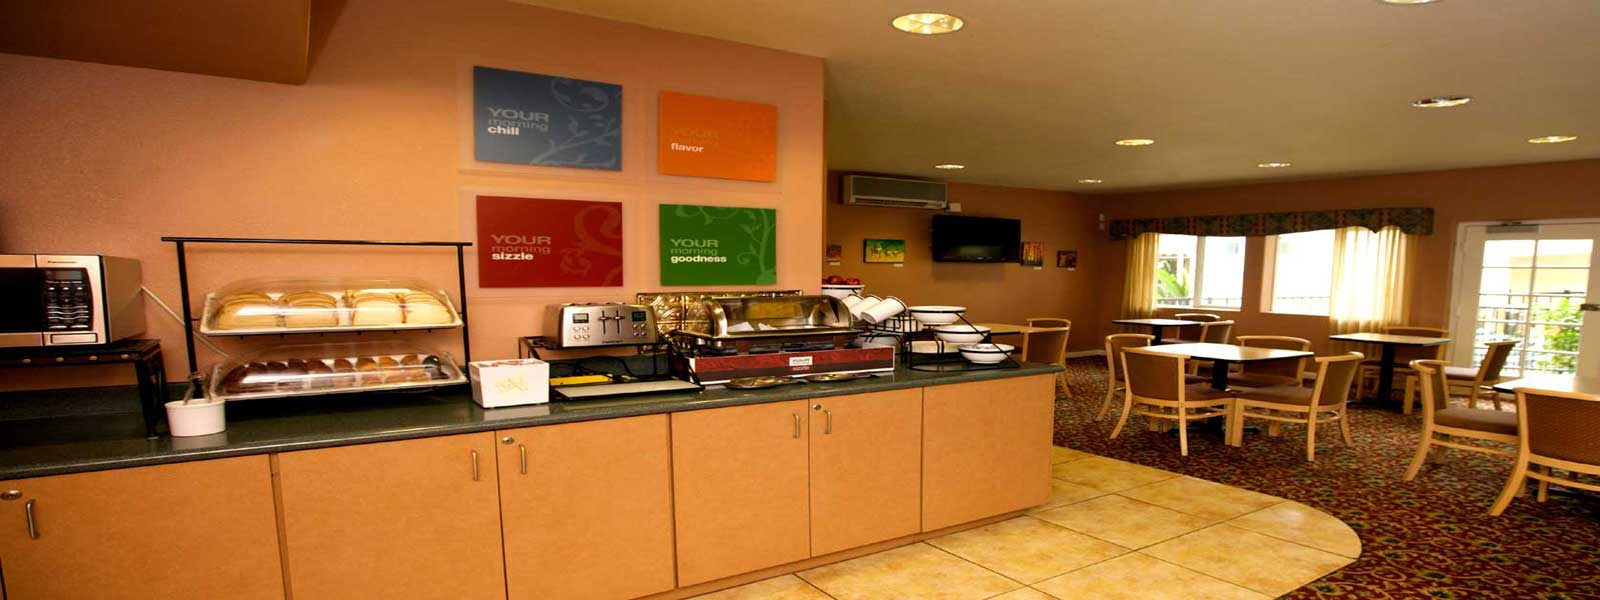 Hotels in San Luis Obispo Great Rates Trip Advisor